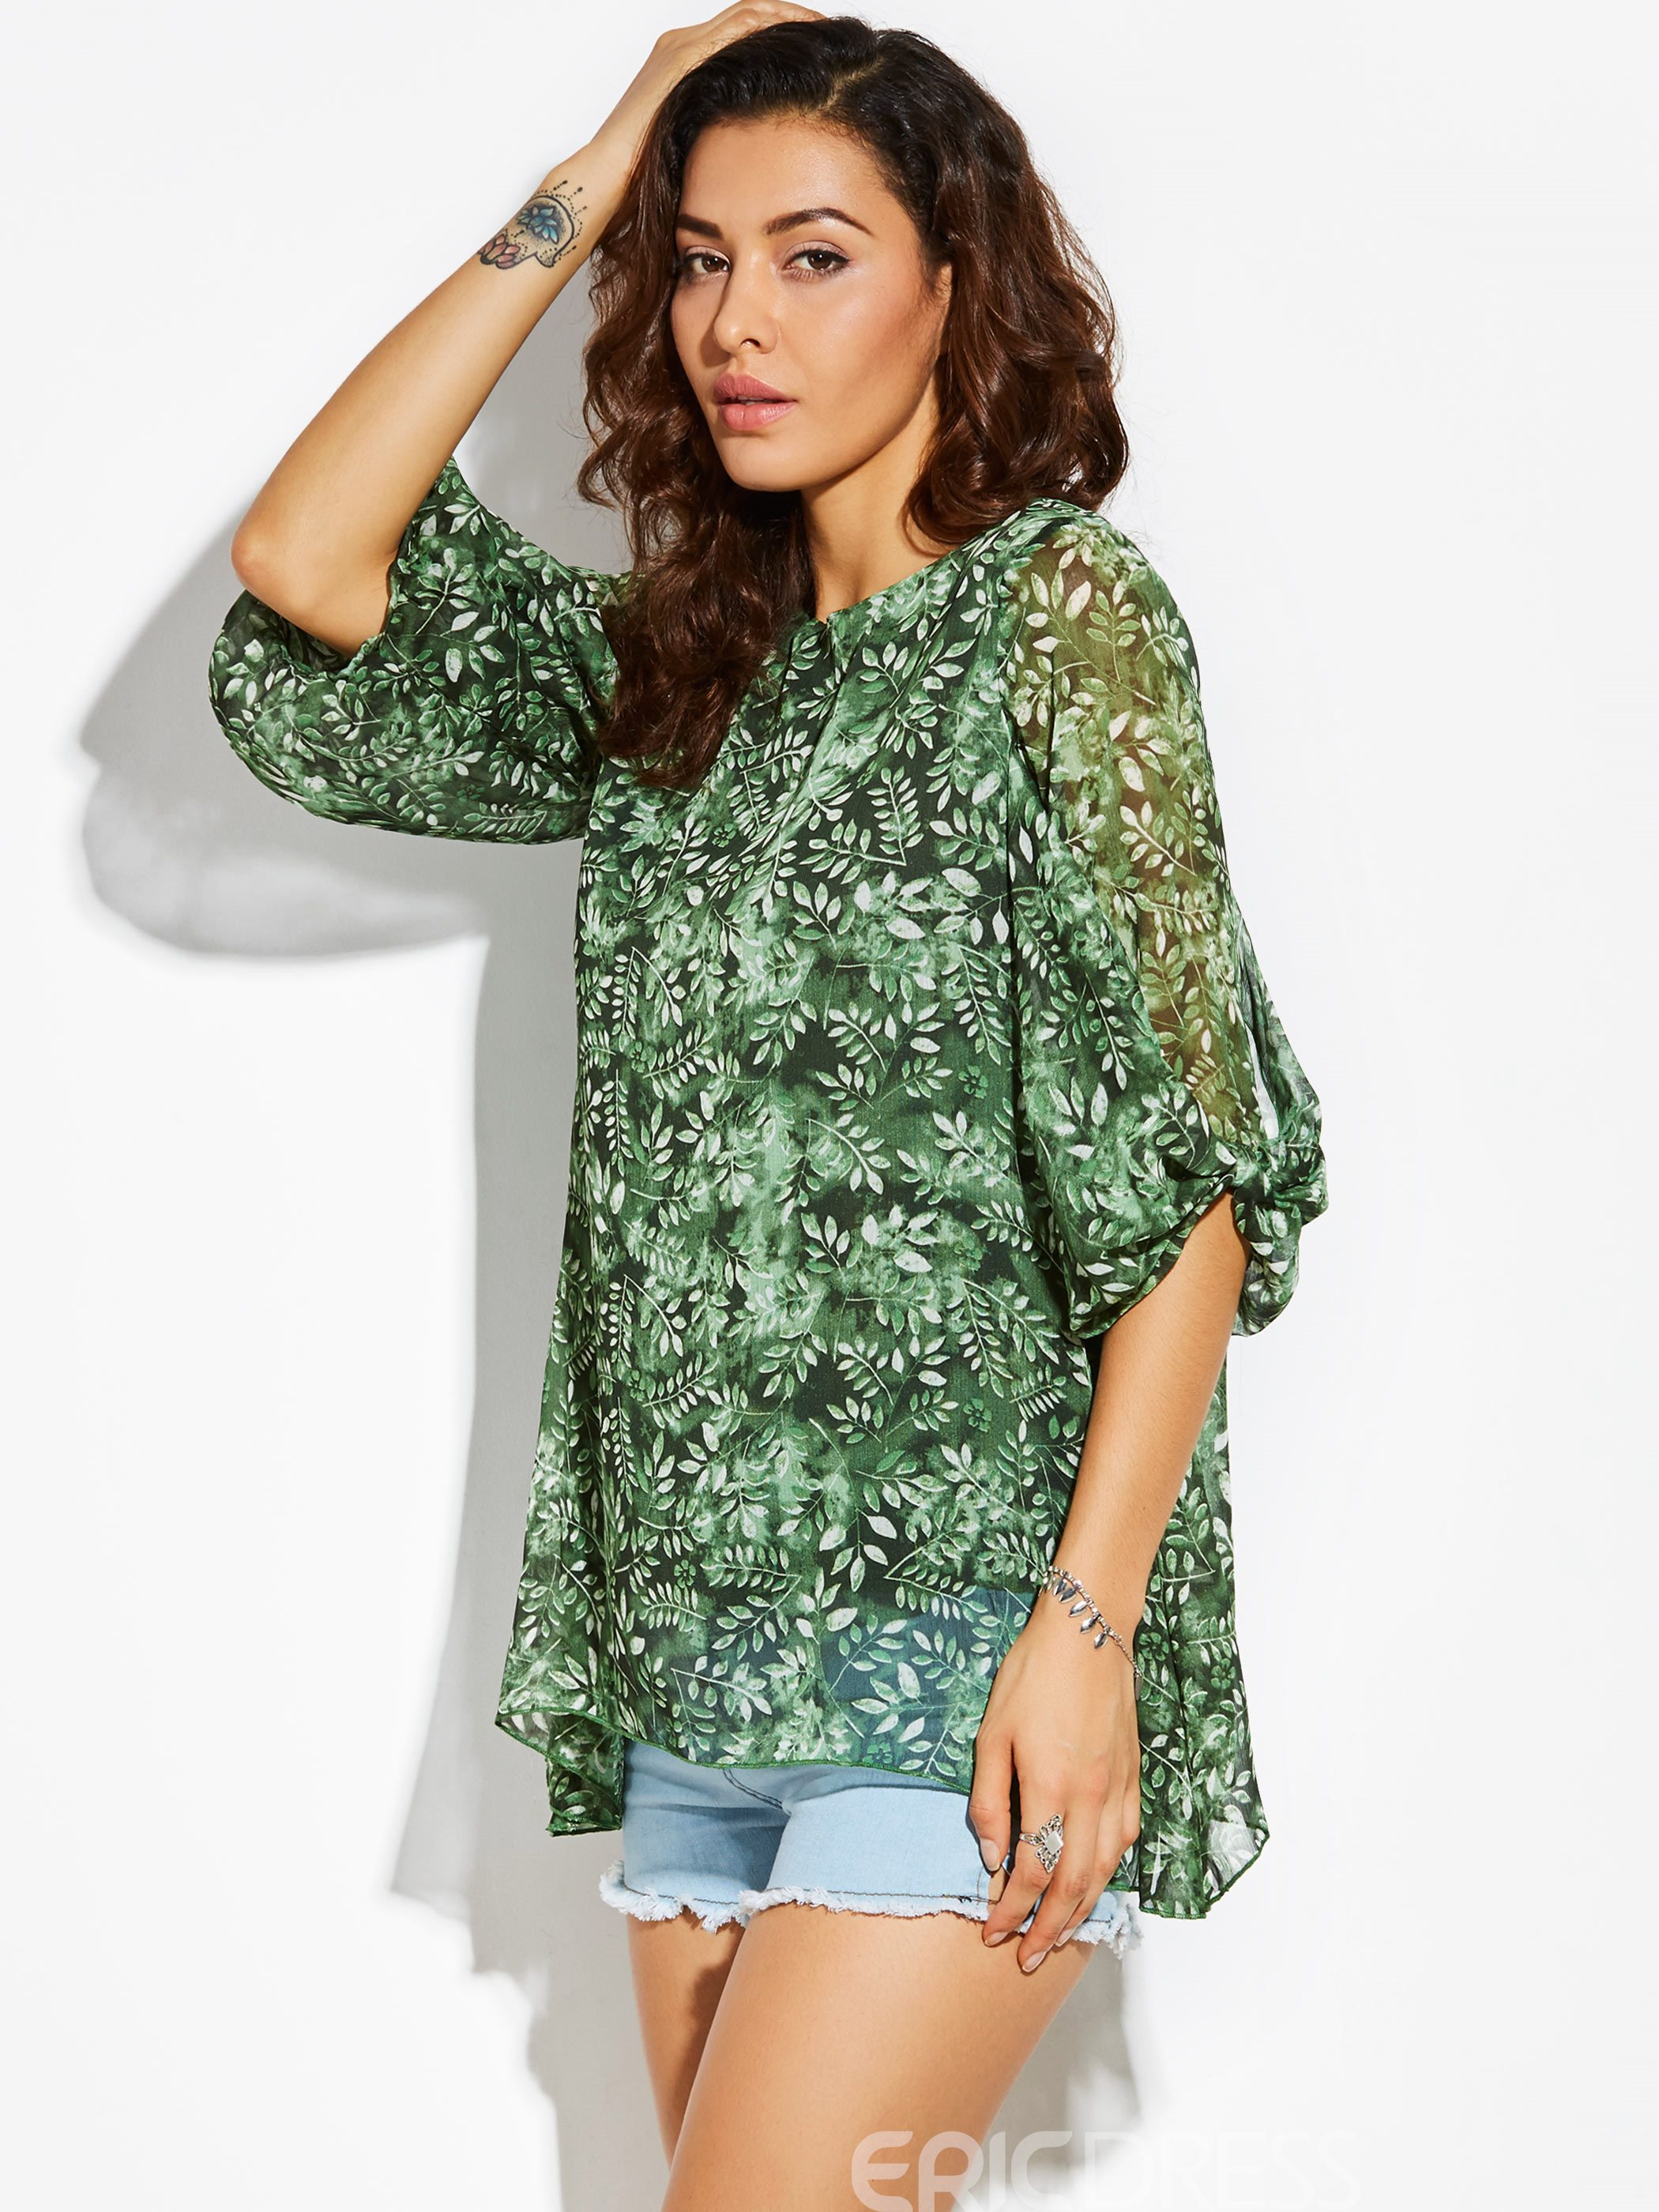 Ericdress Round Neck Plant Print Women's T-shirt